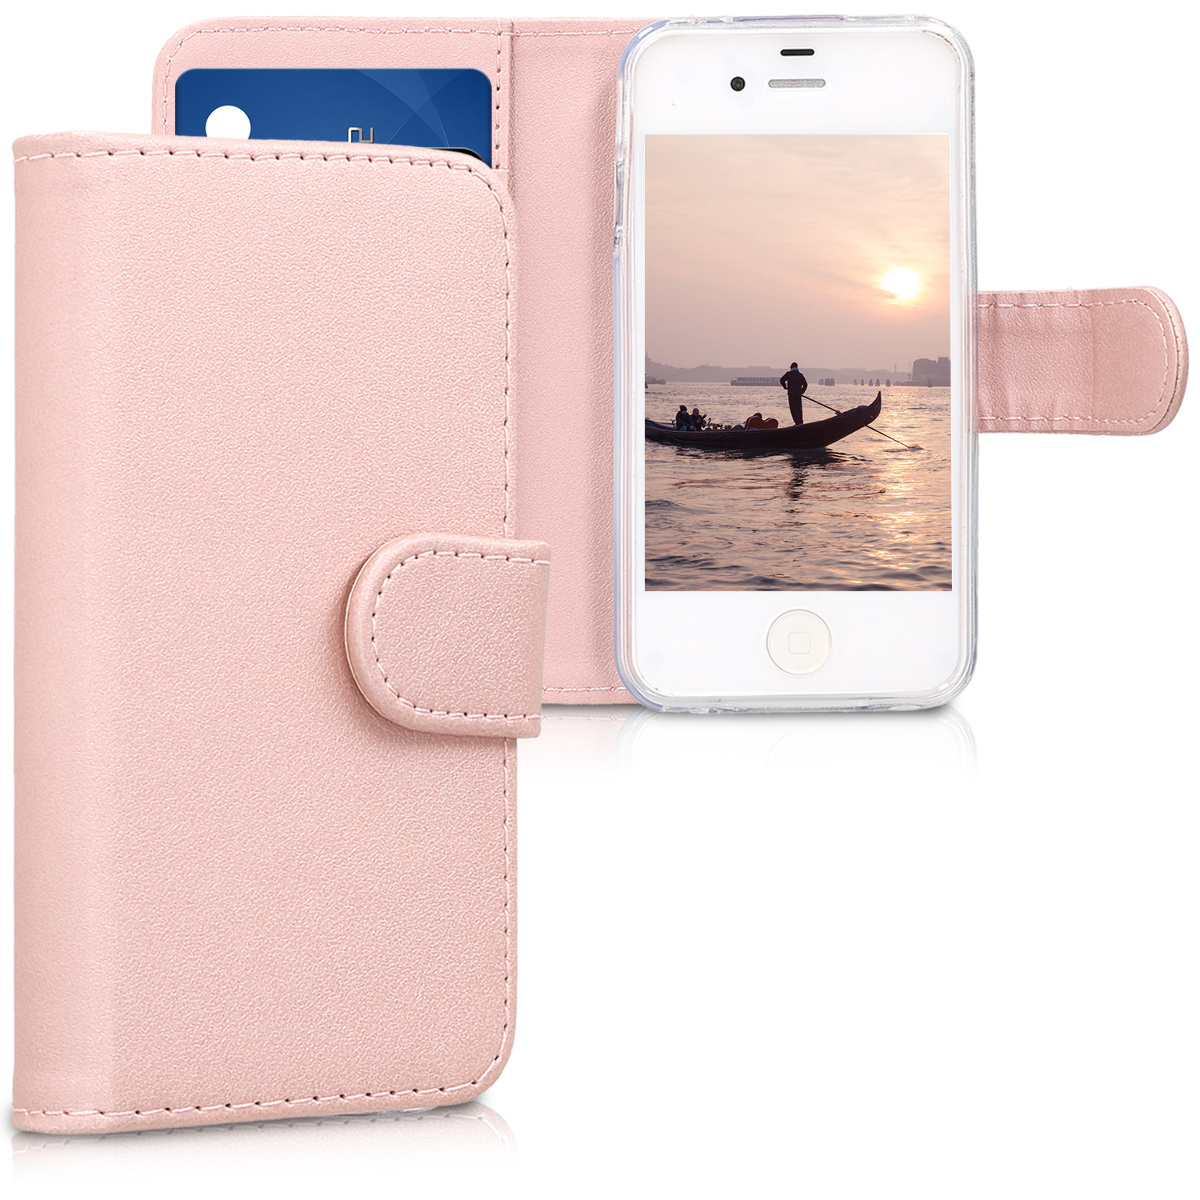 KW Θήκη - Πορτοφόλι Apple iPhone 4 / 4S - Protective Leather Flip Cover - Pink (11444.81)